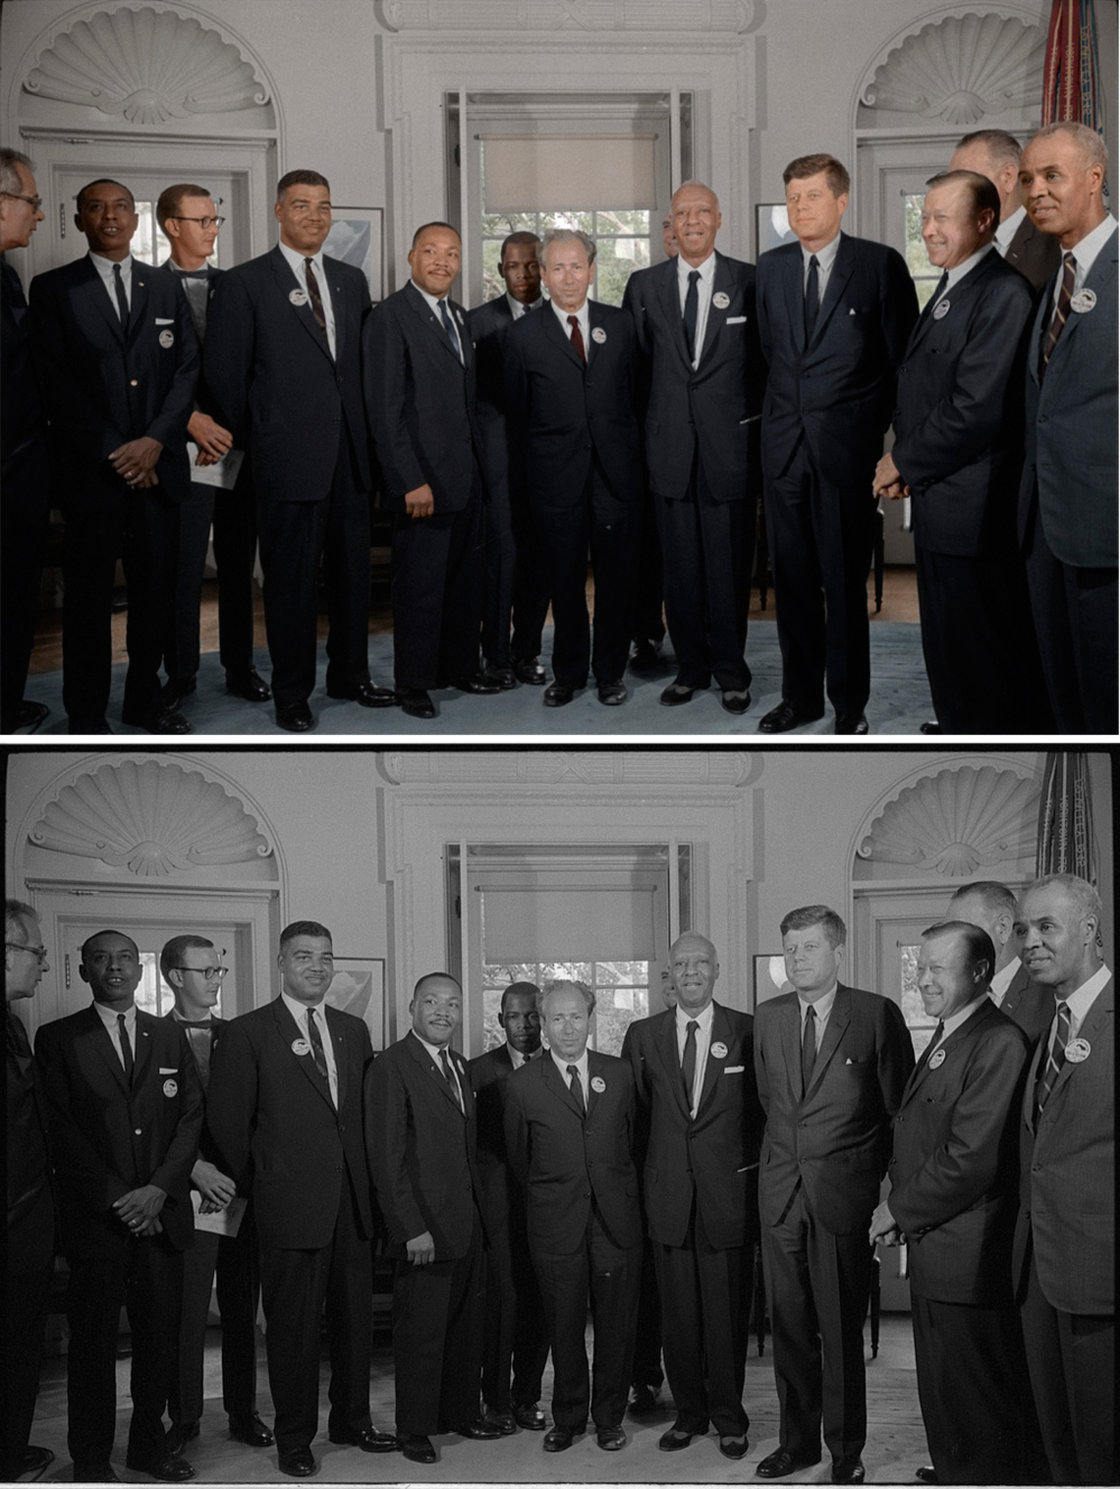 Civil rights leaders meet with President John F. Kennedy in the oval office of the White House after the March on Washington. Colorized by .